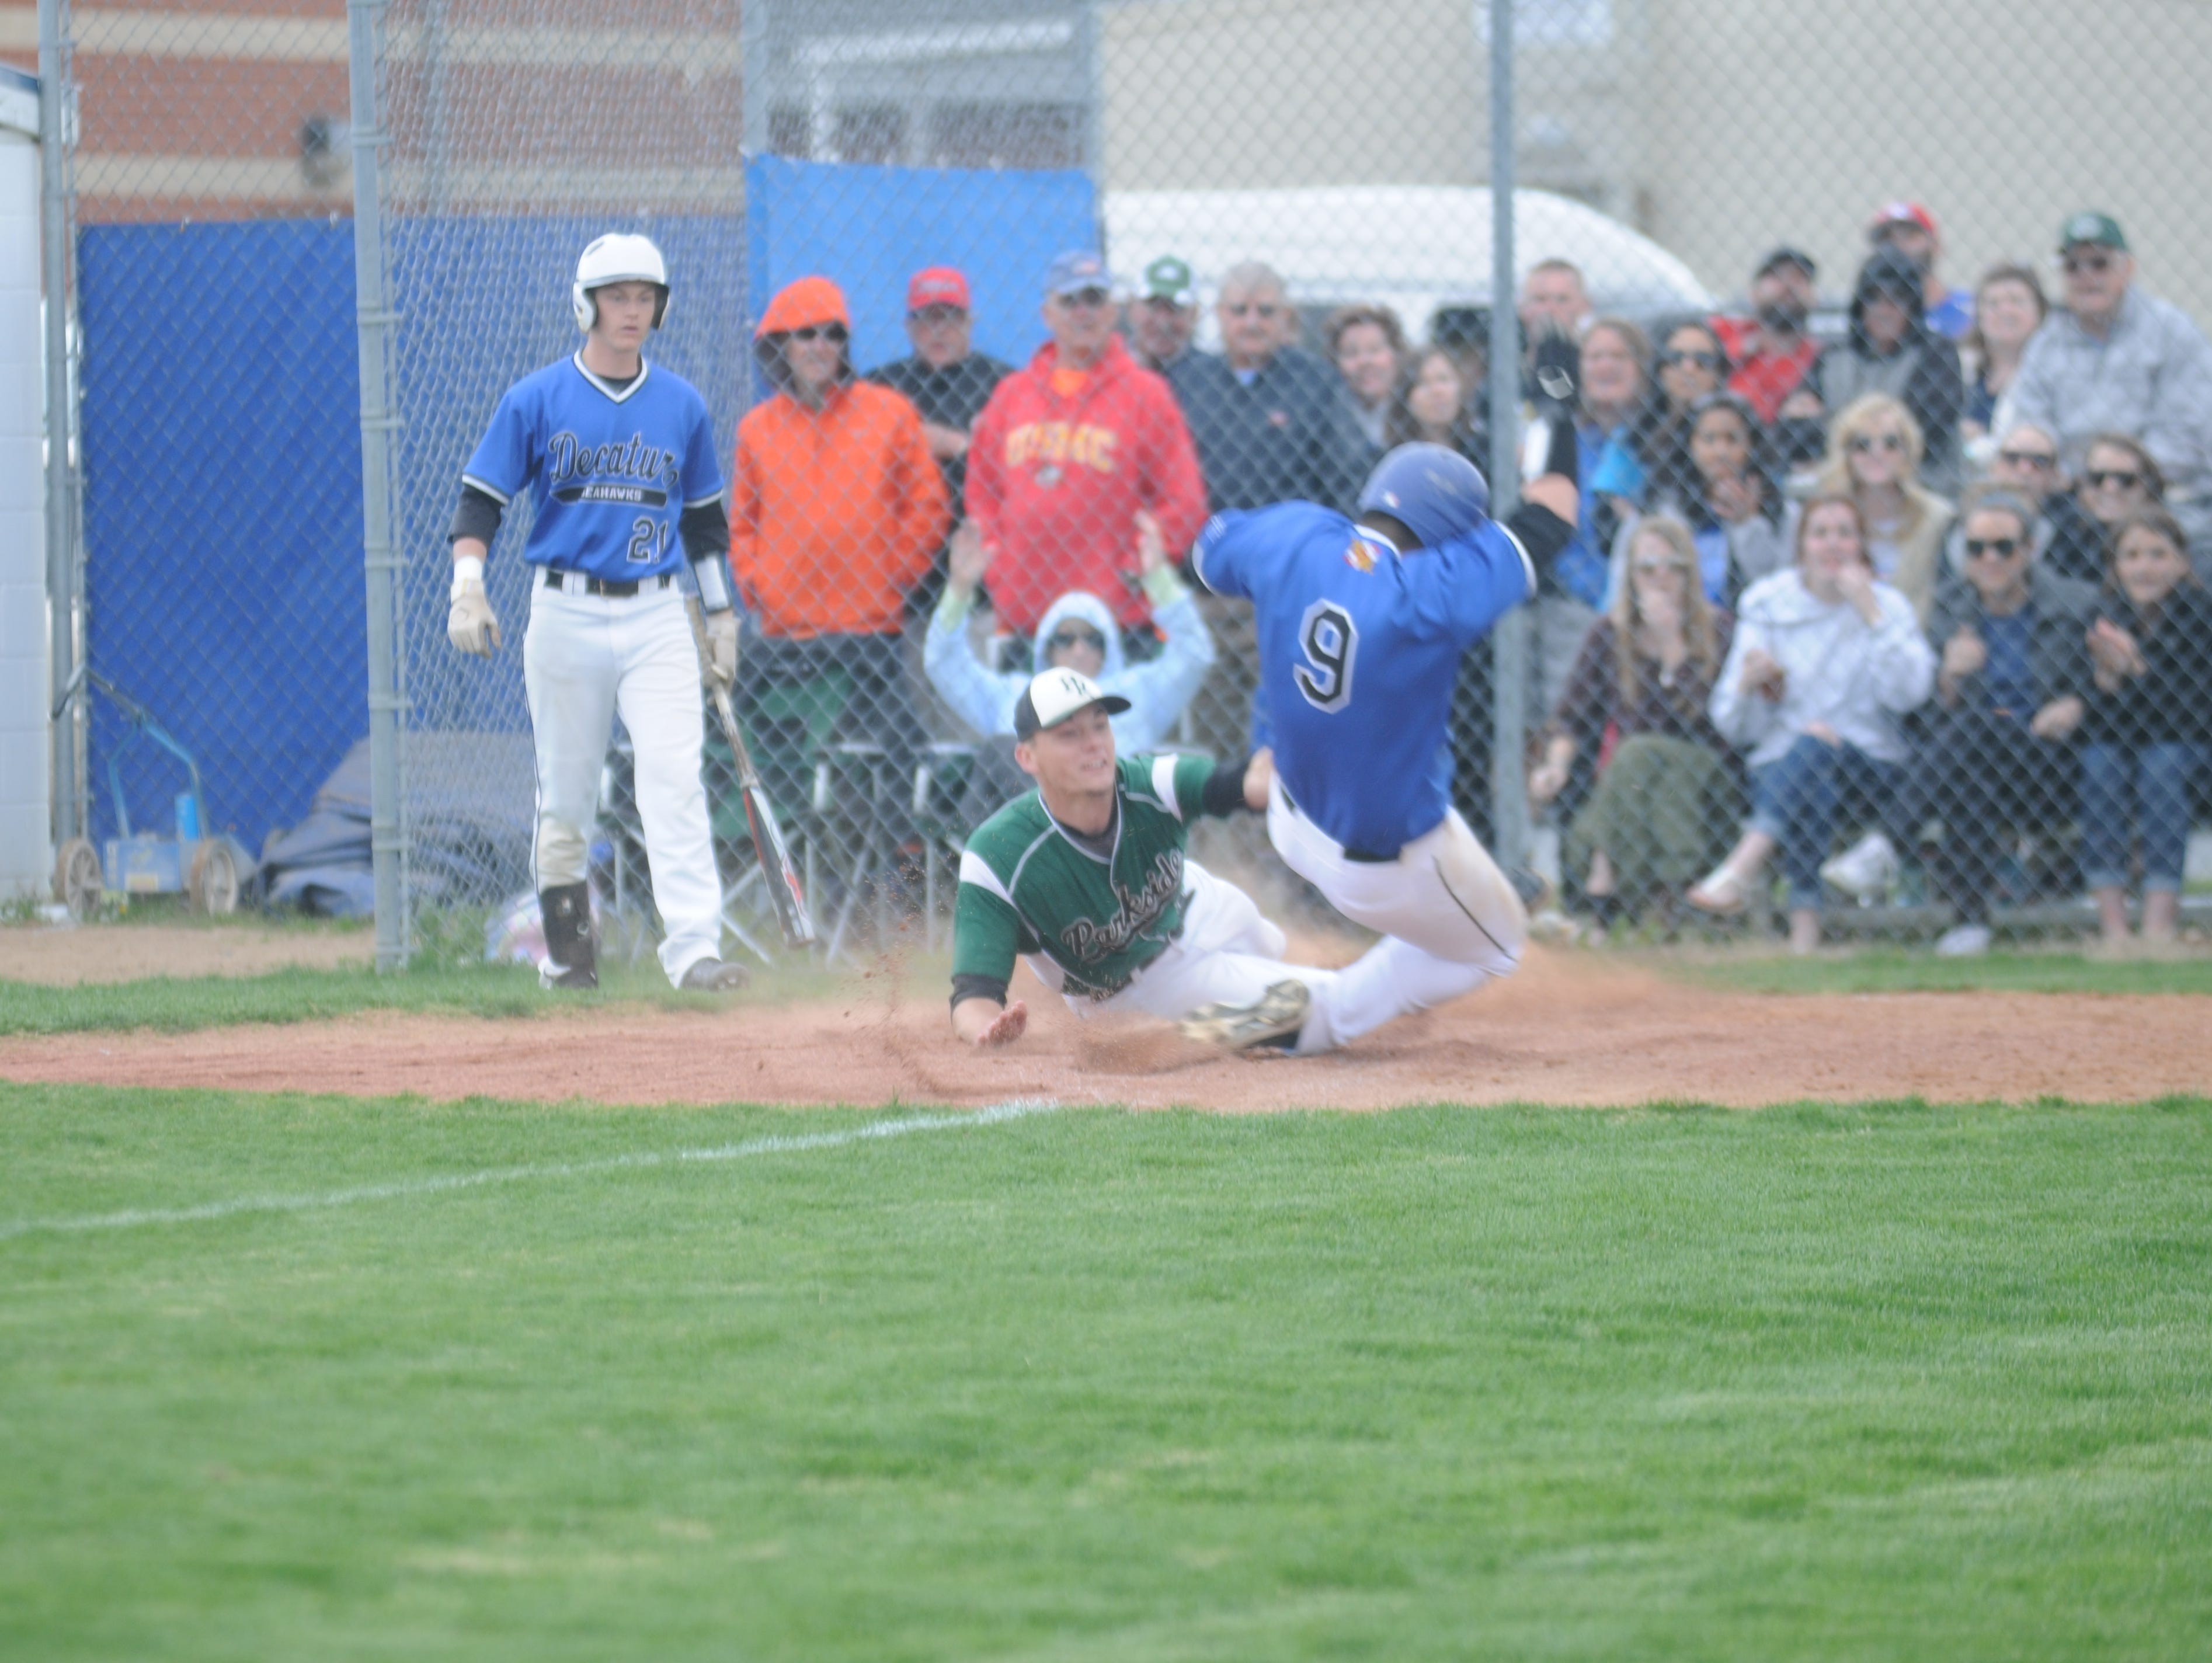 Parkside pitcher Hunter Parsons tags out Decatur's Sean Colgan after a passed ball. The play kept Parkside in the lead 1-0 at the time.